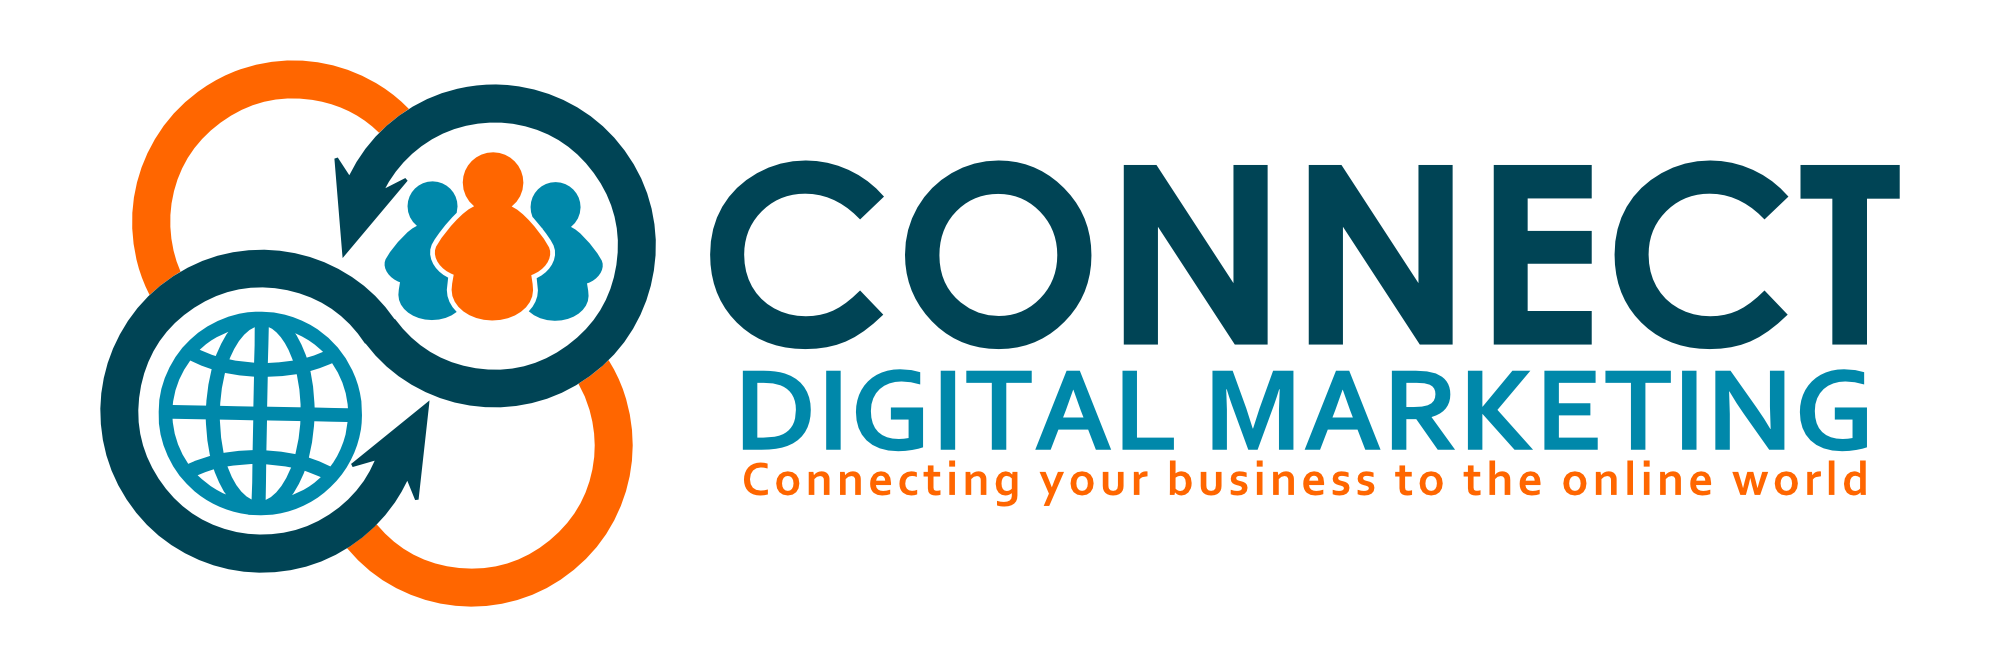 What are the services a Digital Marketing Company should provide